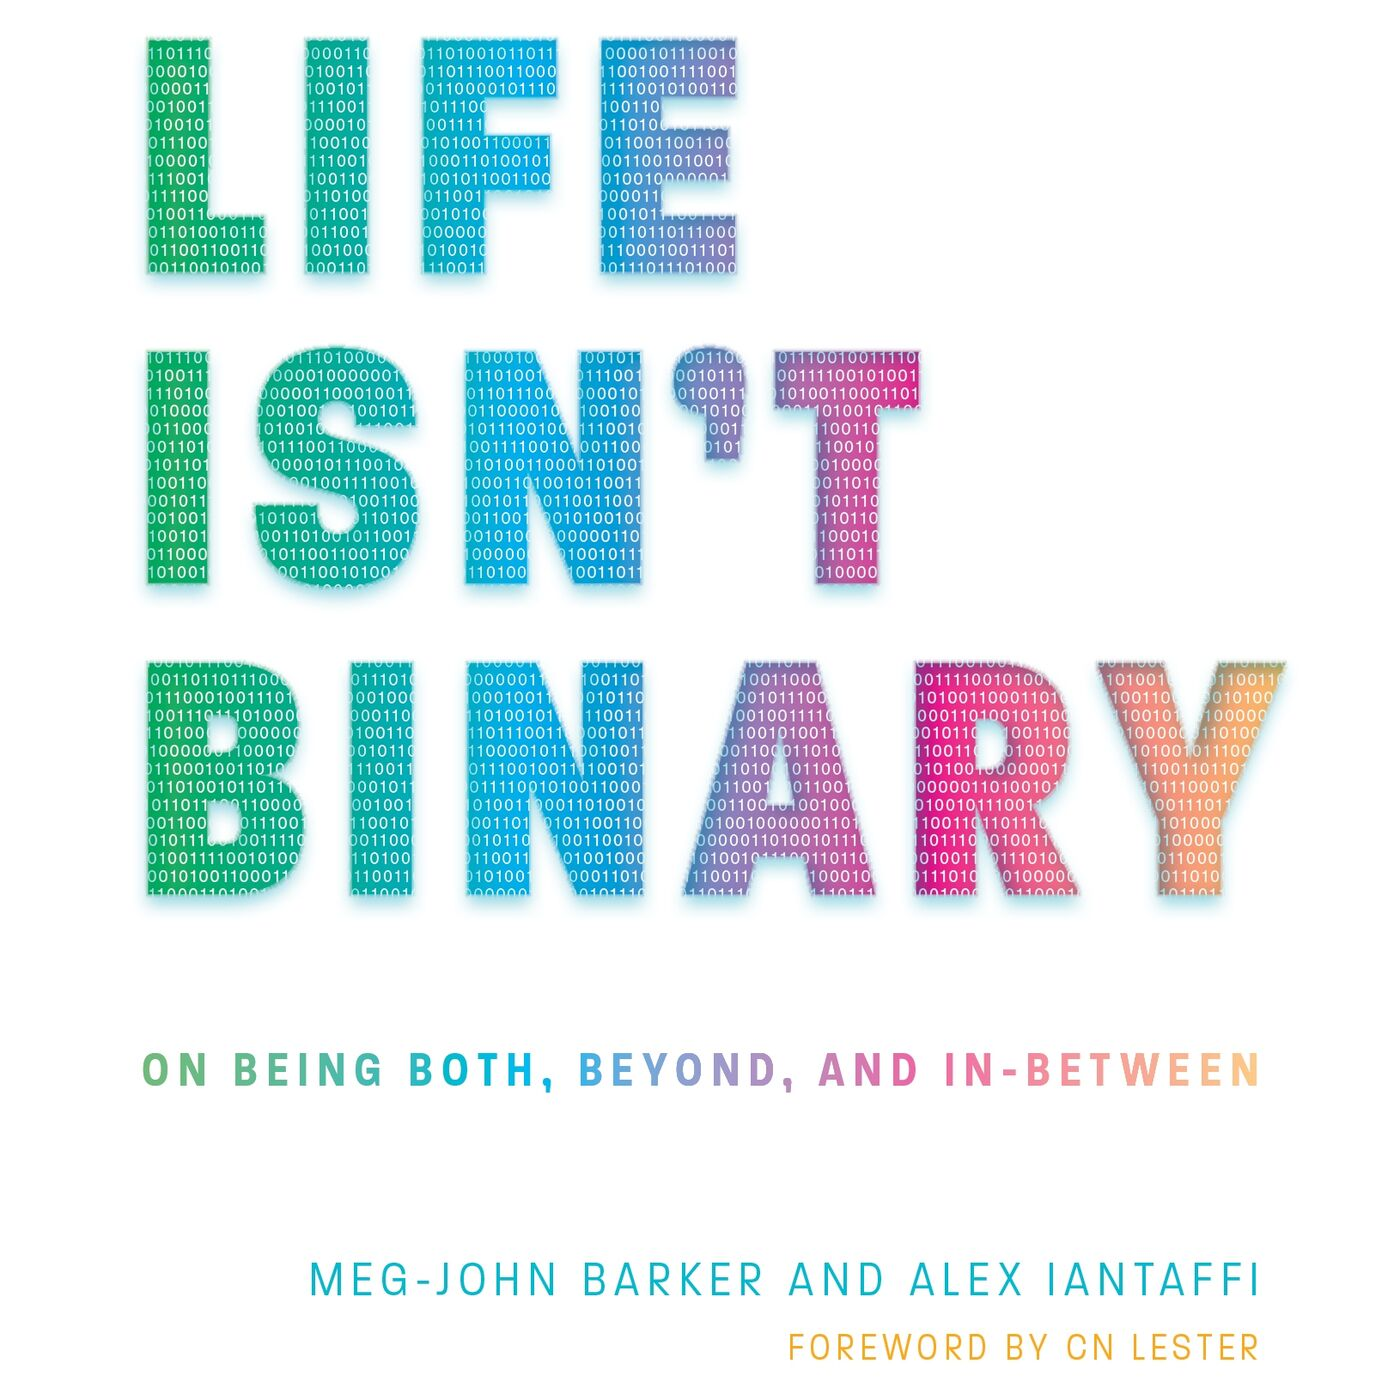 A non-binary approach in the COVID-19 pandemic: a conversation with Meg-John Barker and Alex Iantaffi